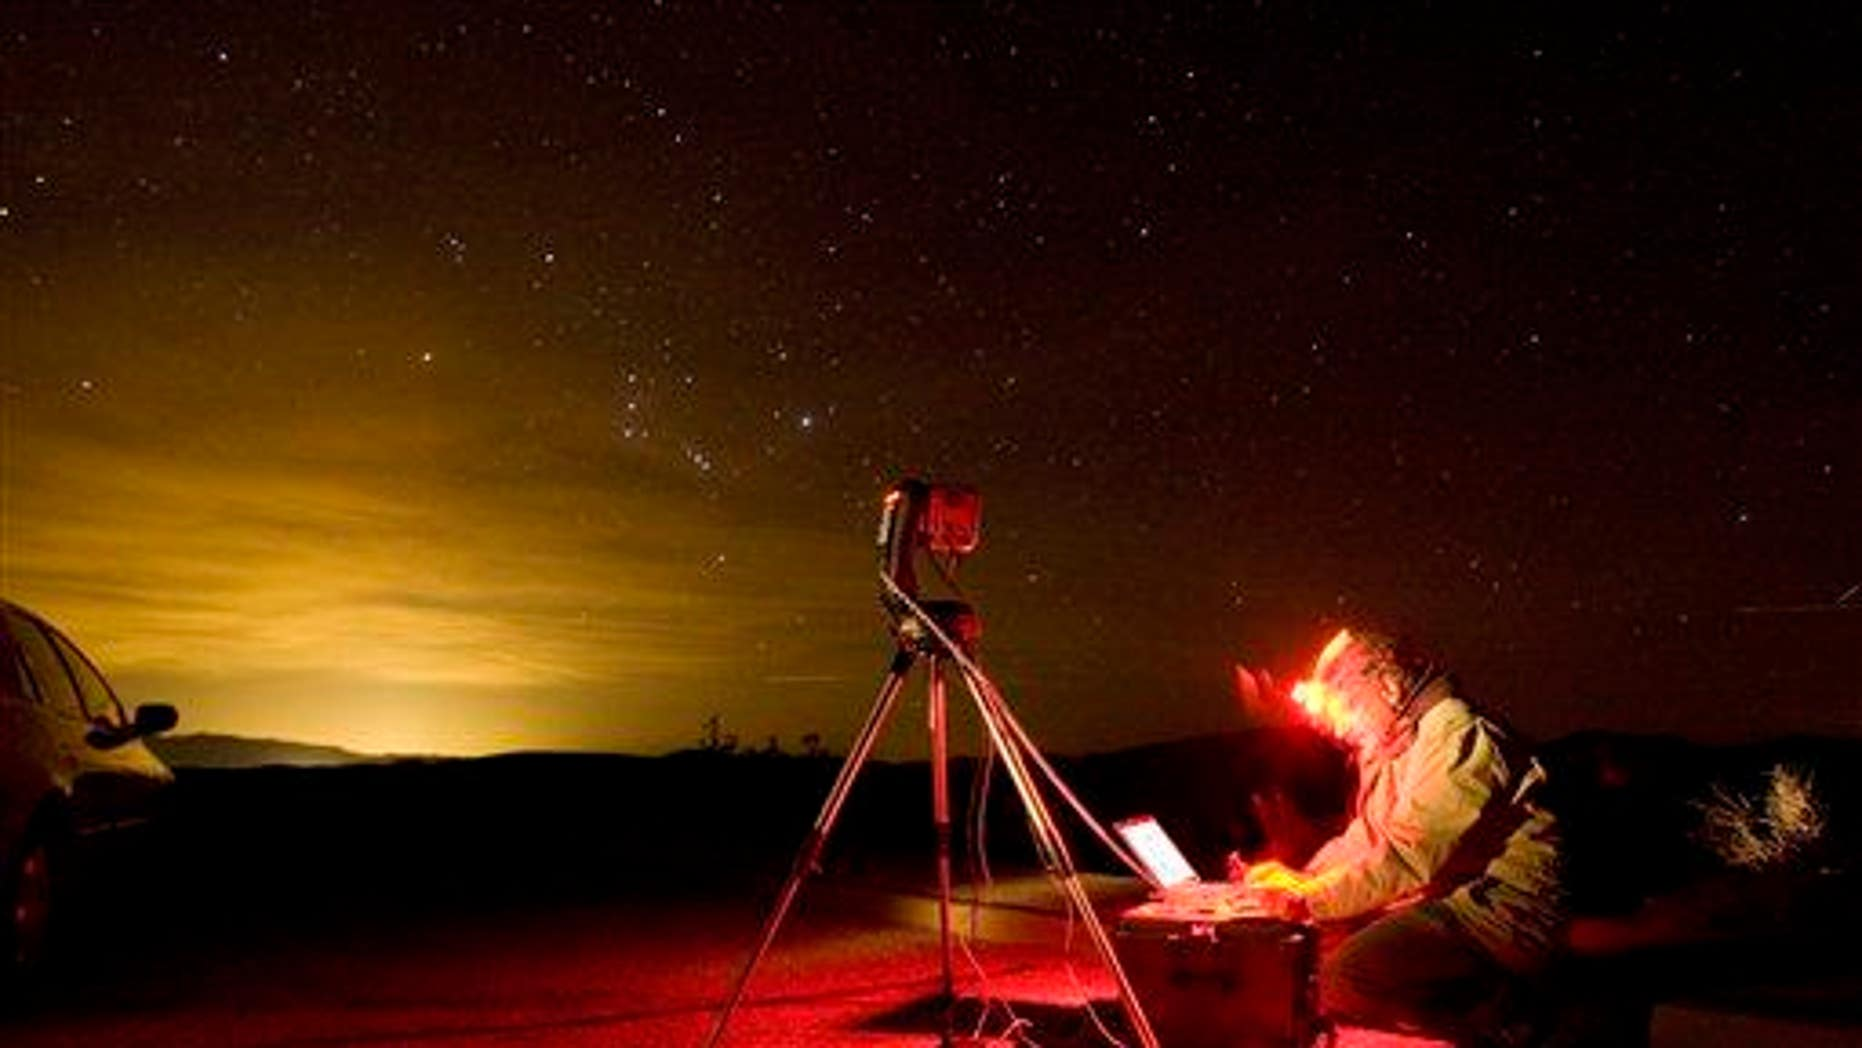 A photographer snaps the night sky with a special computer controlled camera in Death Valley National Park, Calif.